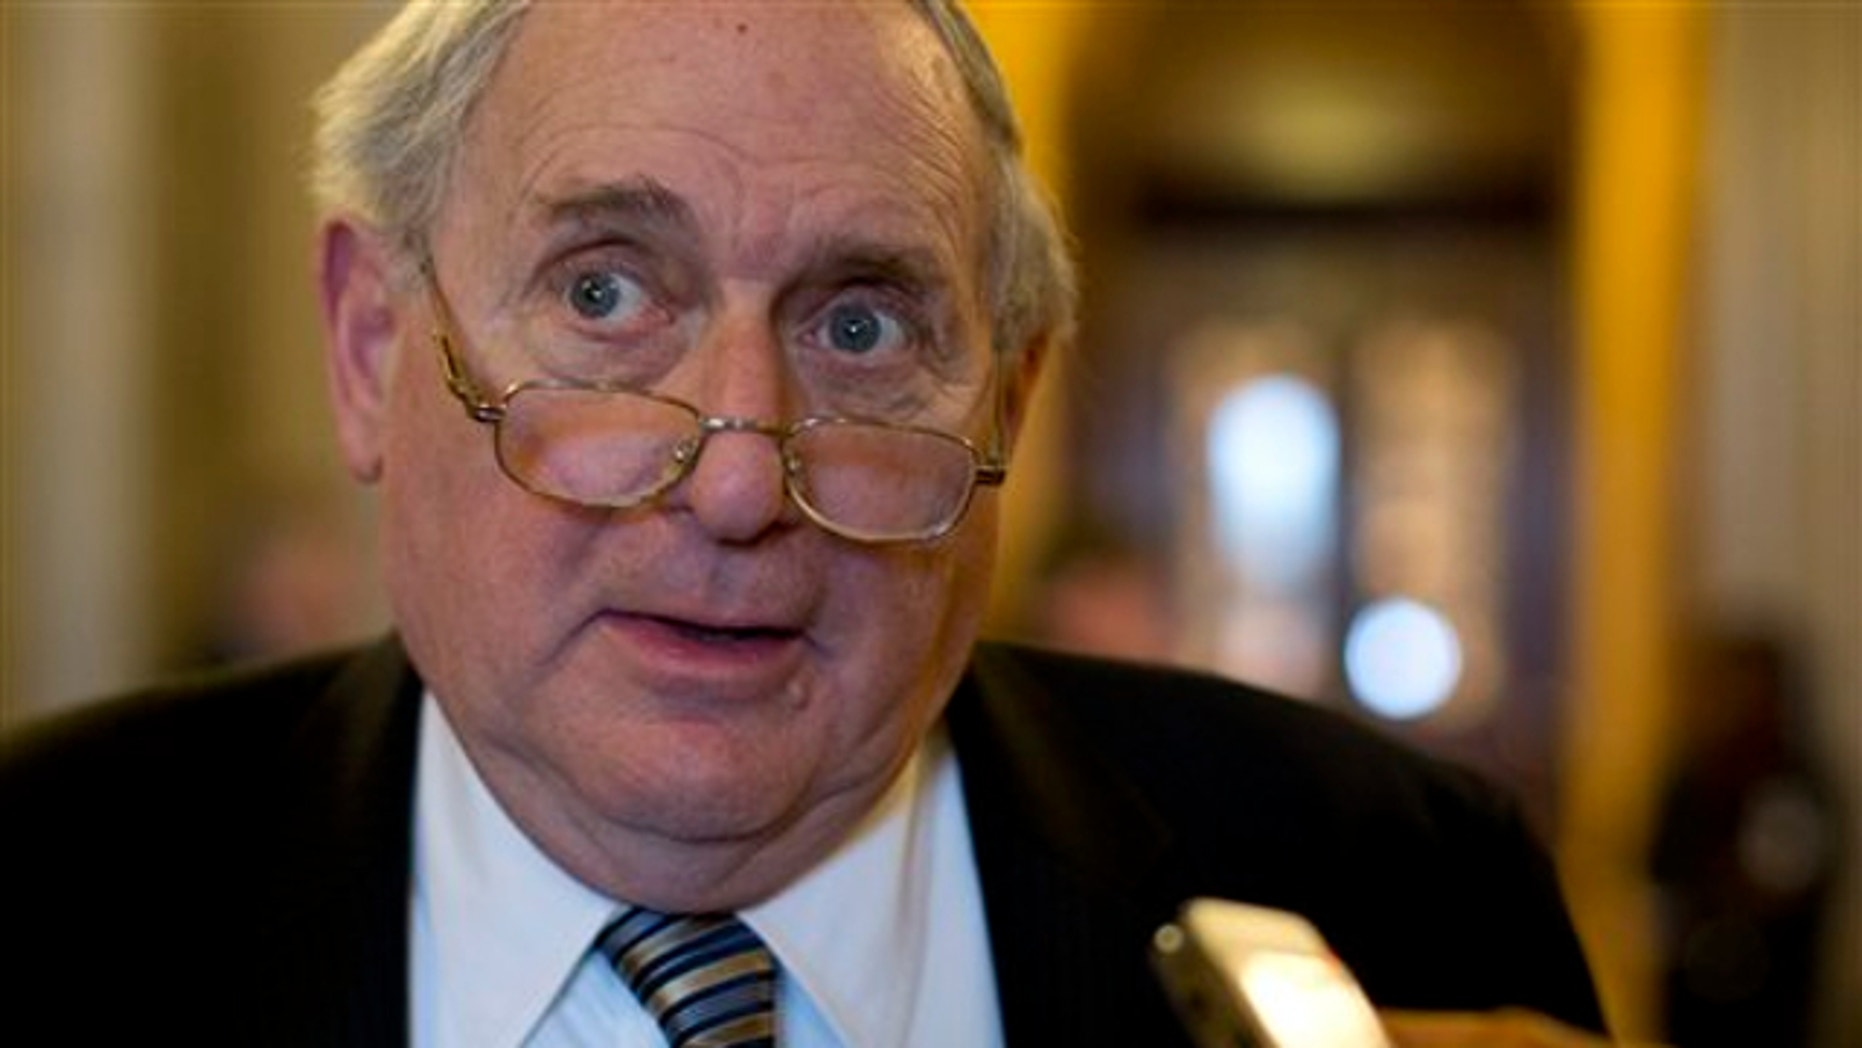 Feb. 26, 2013: Senate Armed Services Committee Chairman Sen. Carl Levin, D-Mich. speaks with reporters on Capitol Hill in Washington.